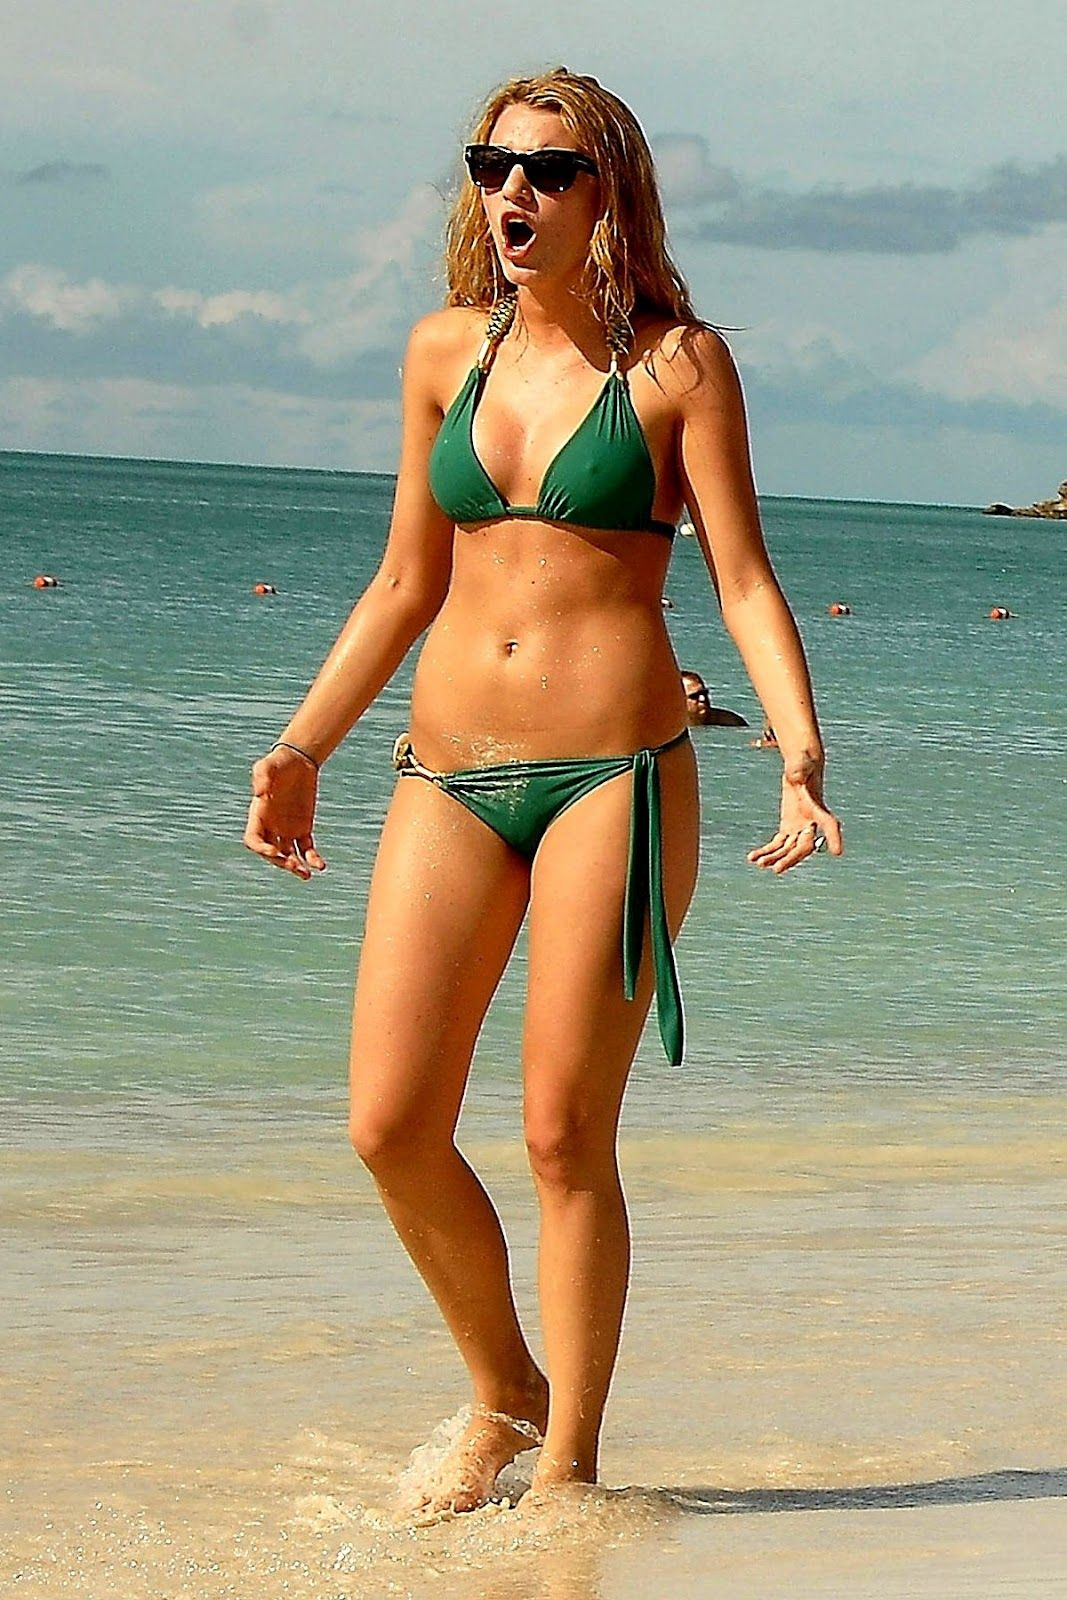 Blake Lively Bikini Hot